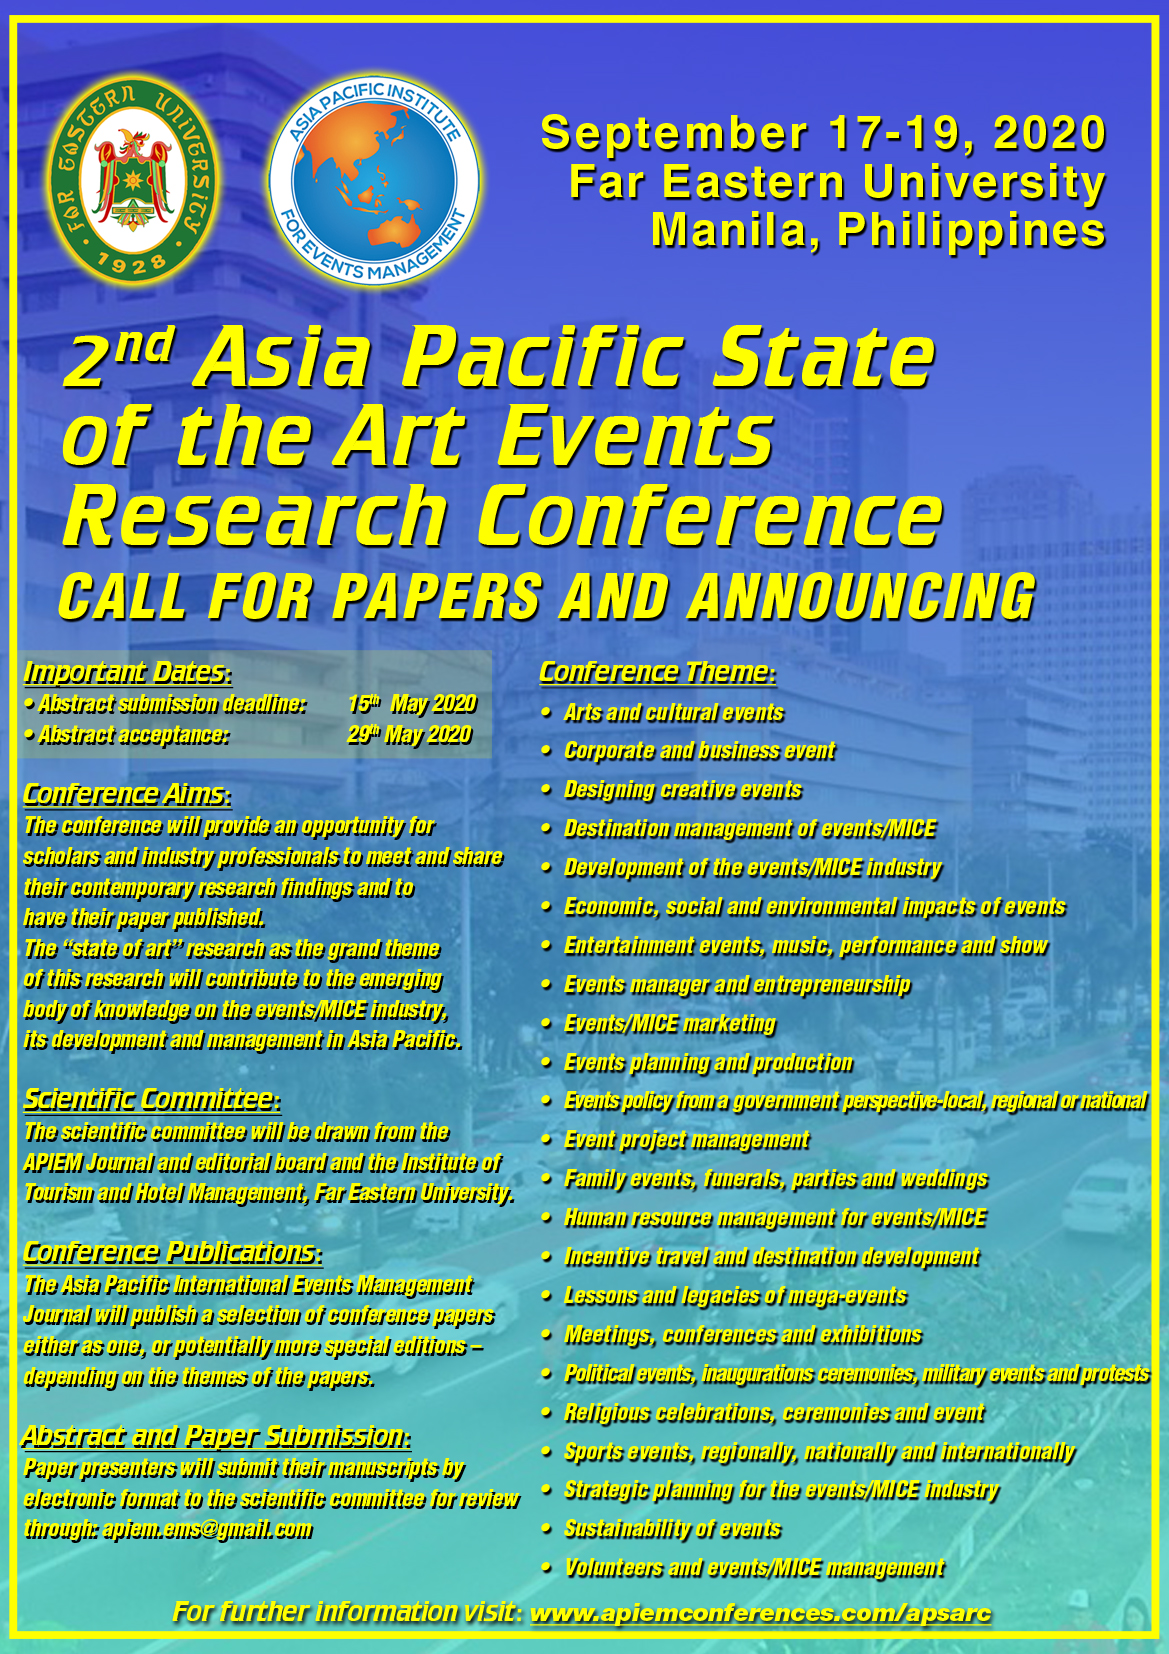 Join APIEM in Manila, Philippines 17 – 19 September 2020 for the 2nd Asia Pacific State of the Art Events Research Conference